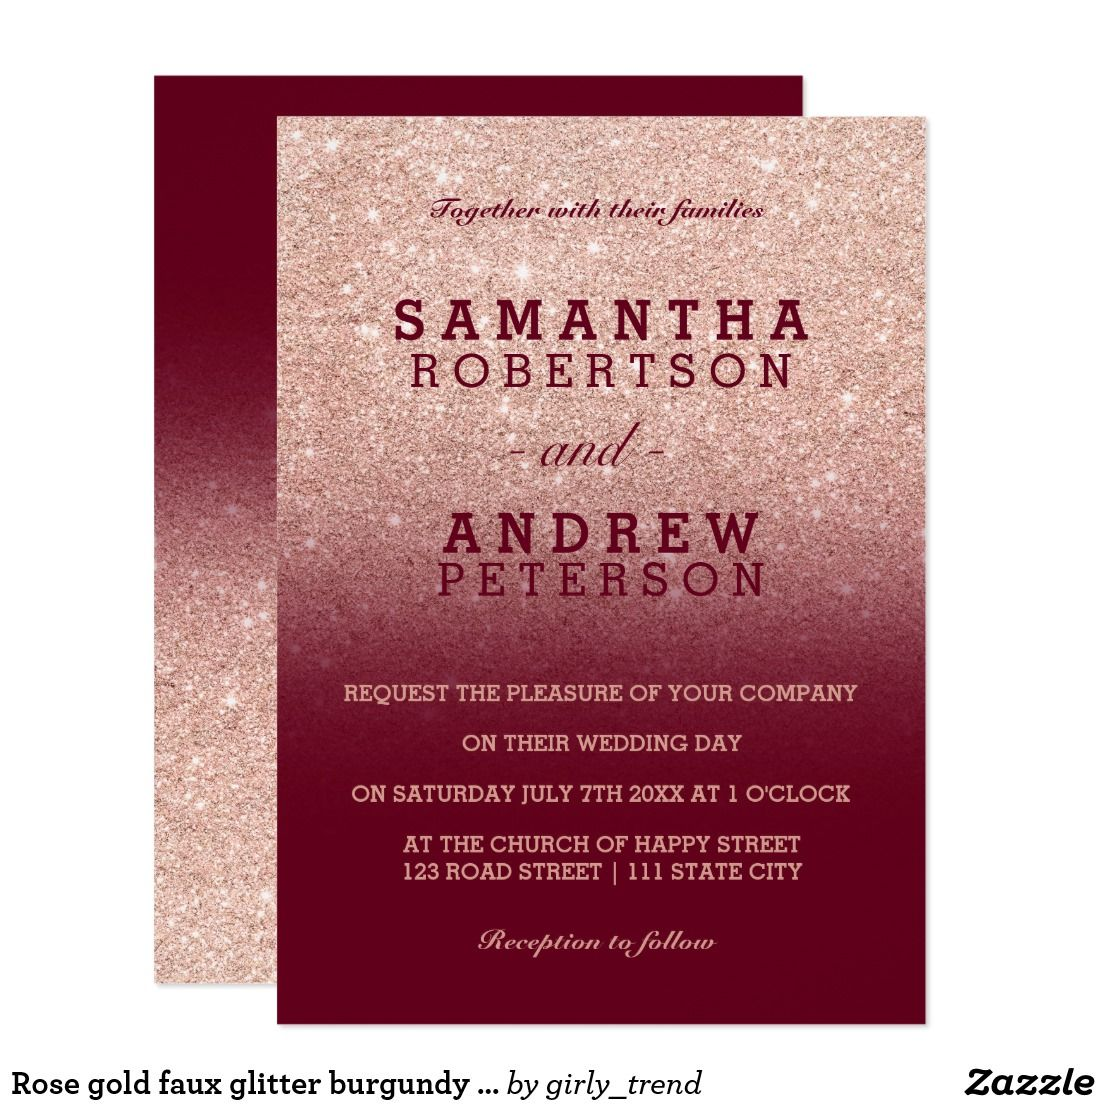 Rose gold faux glitter burgundy ombre wedding card   Rose gold ...